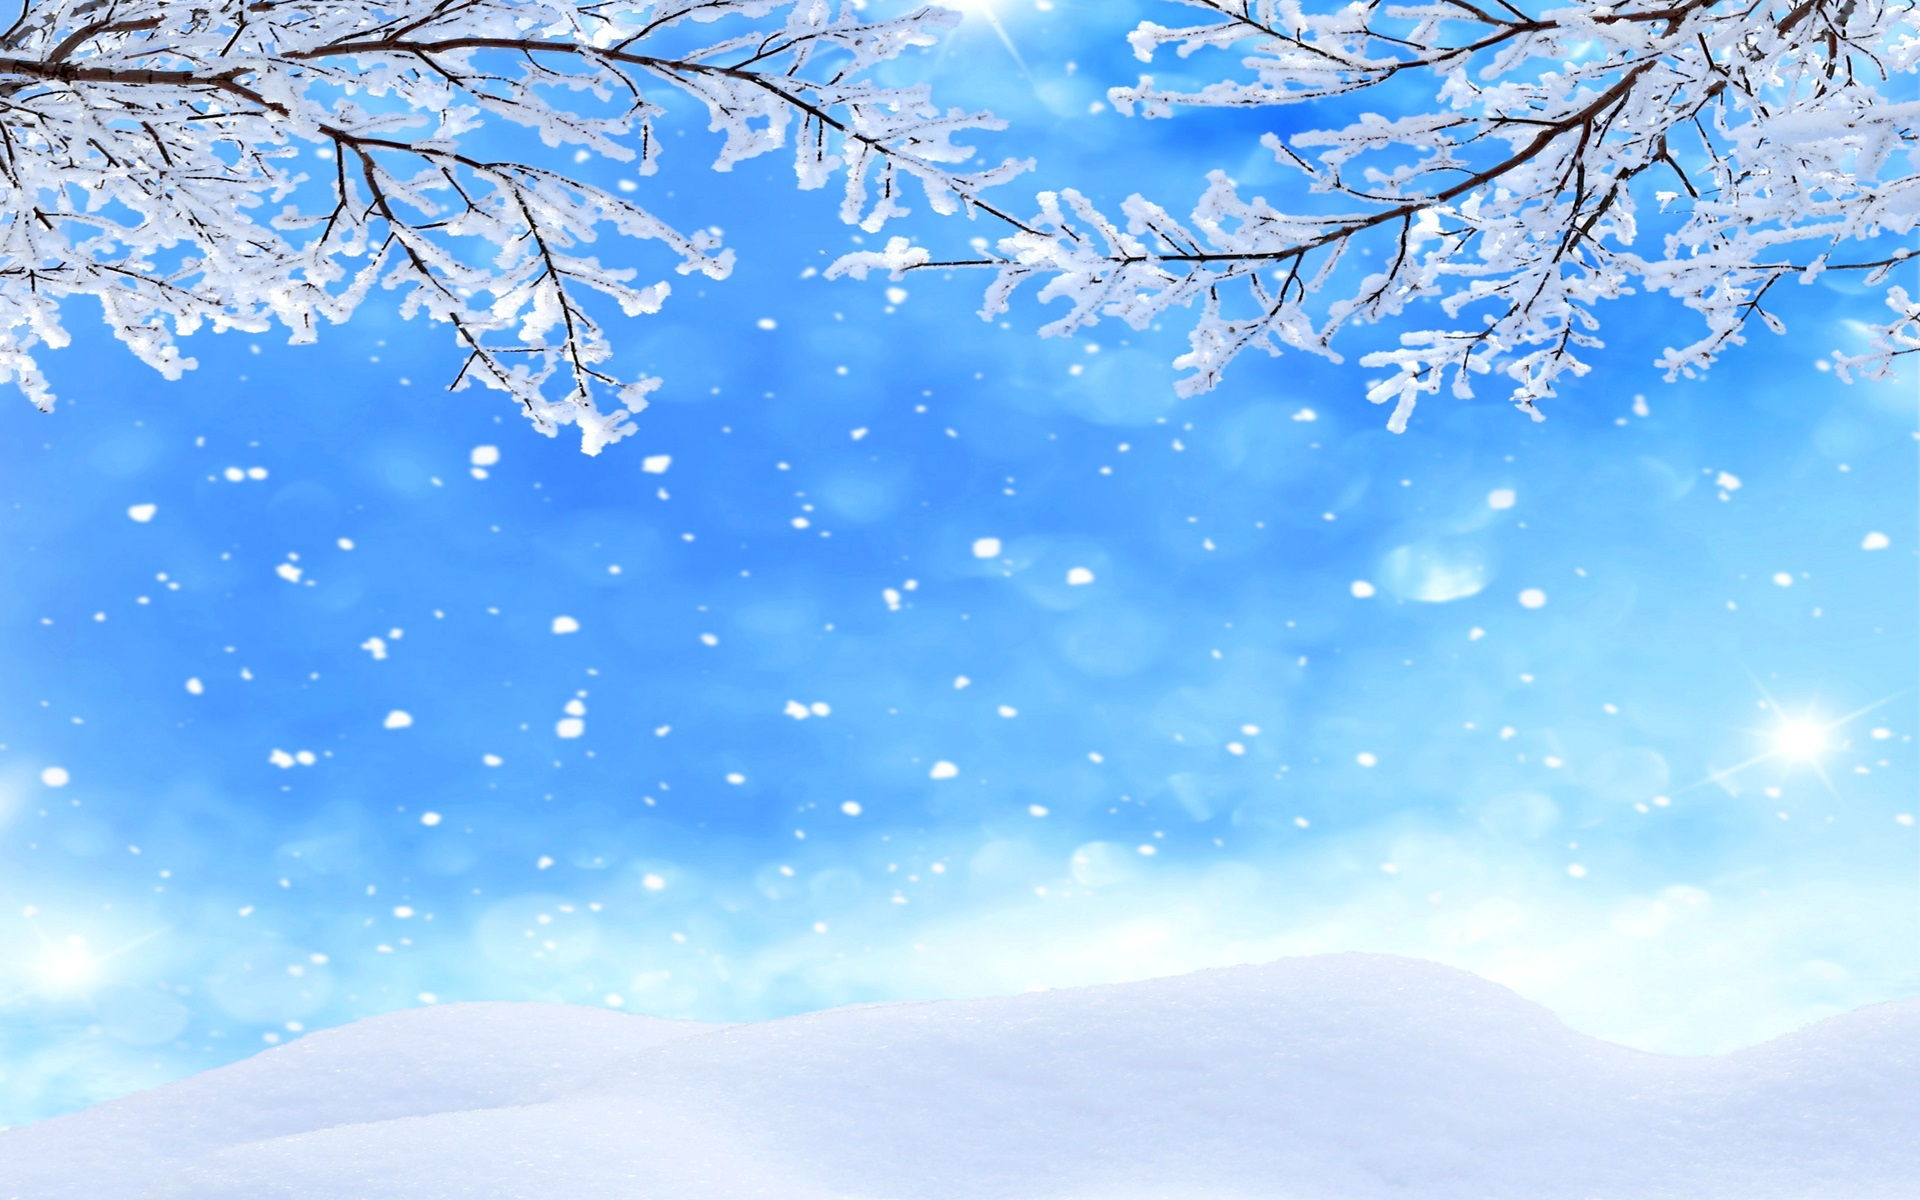 Iphone 5s Wallpapers Full Hd Fondos De Pantalla Invierno Ramitas Nieve Copos De